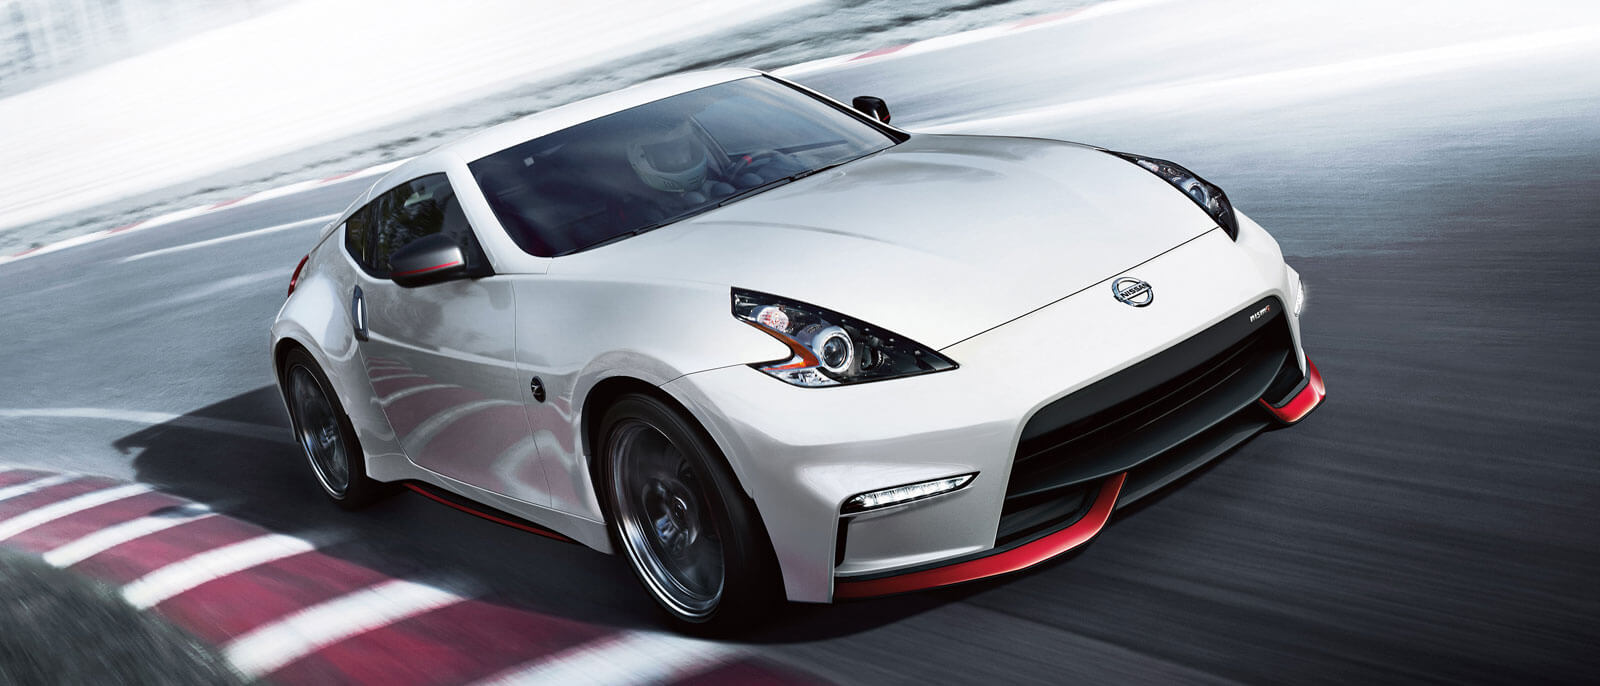 2016 Nissan 370Z in white on race track